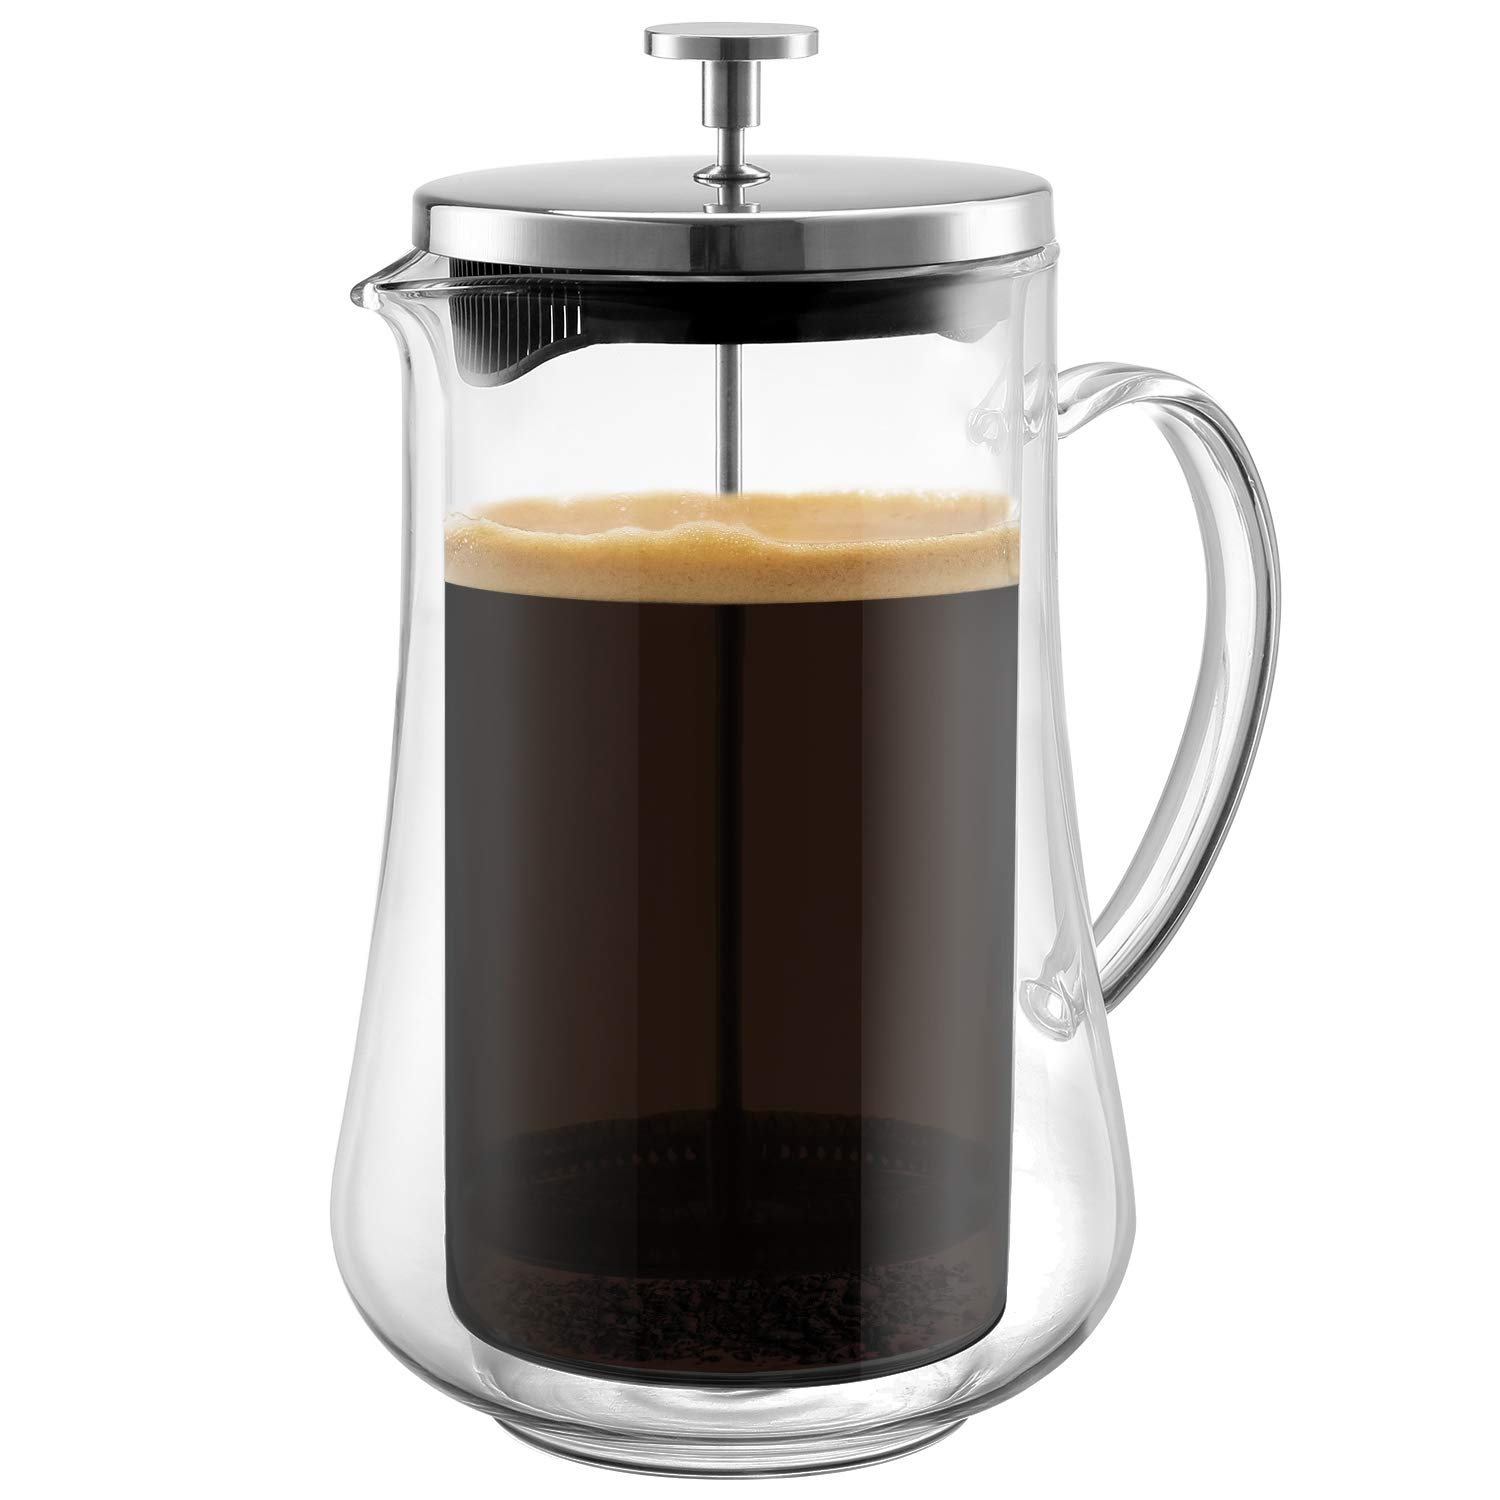 Glass French Press Coffee Maker | Unique Double Wall Design Brewer - Keeps Hot and Cold Longer | 4 Level Filtration System Heat Resistant Borosilicate Durable Glass | Great Gift Idea! 34 oz. (1000ml) by Royexe